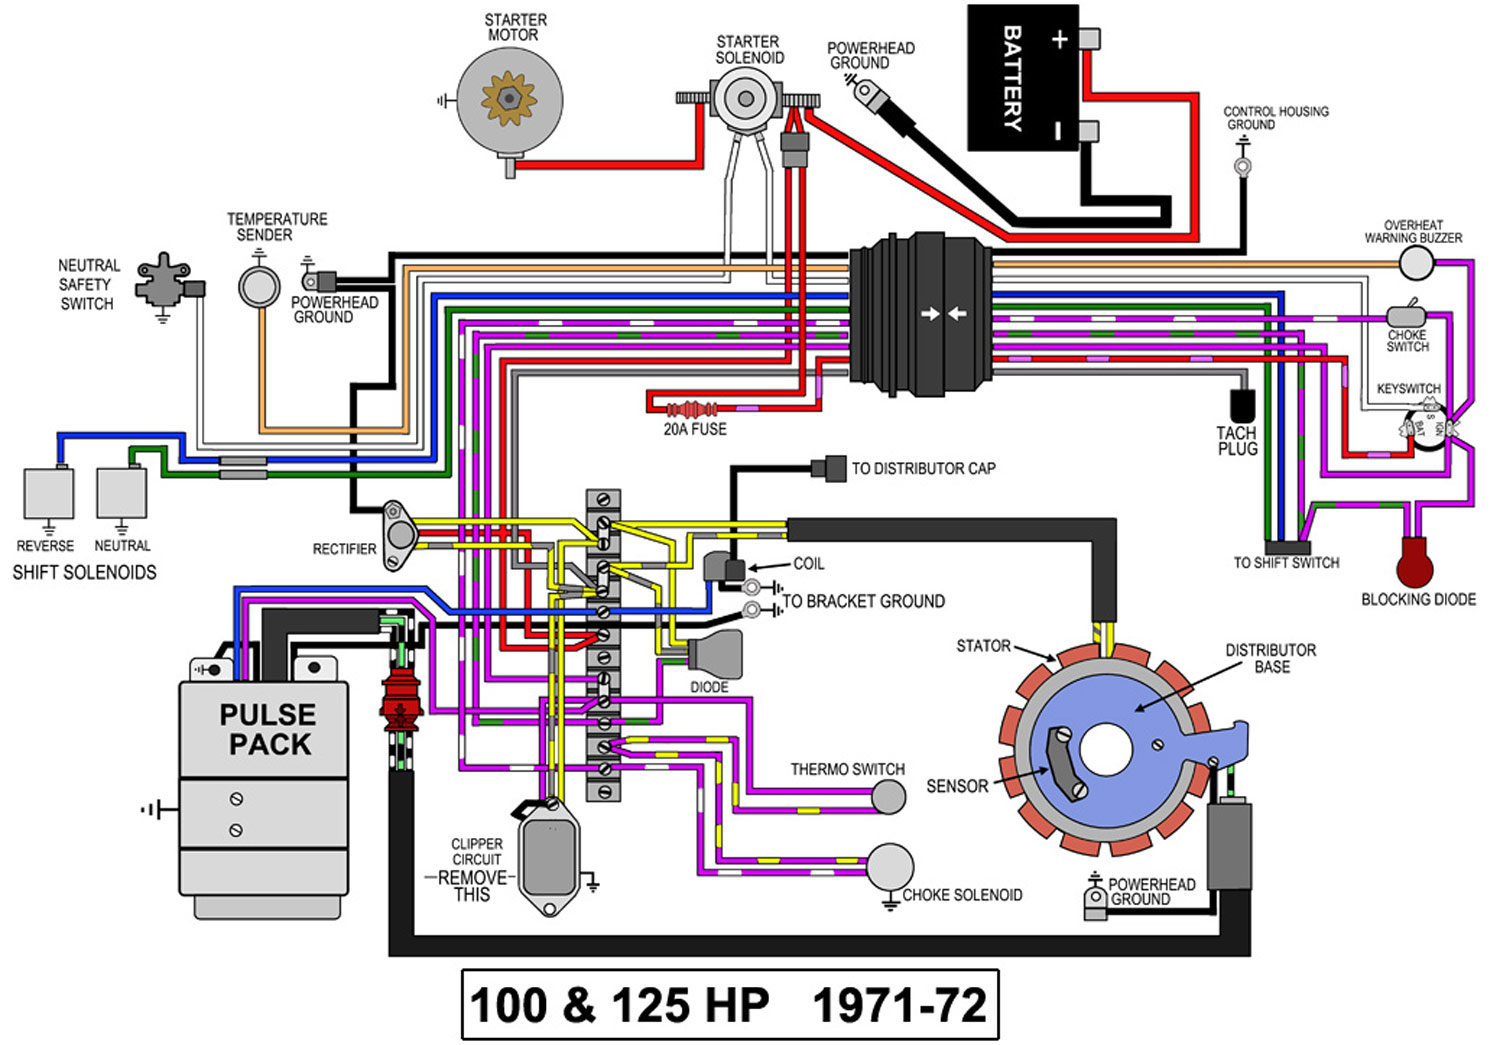 medium resolution of 1975 johnson 70 wire diagram